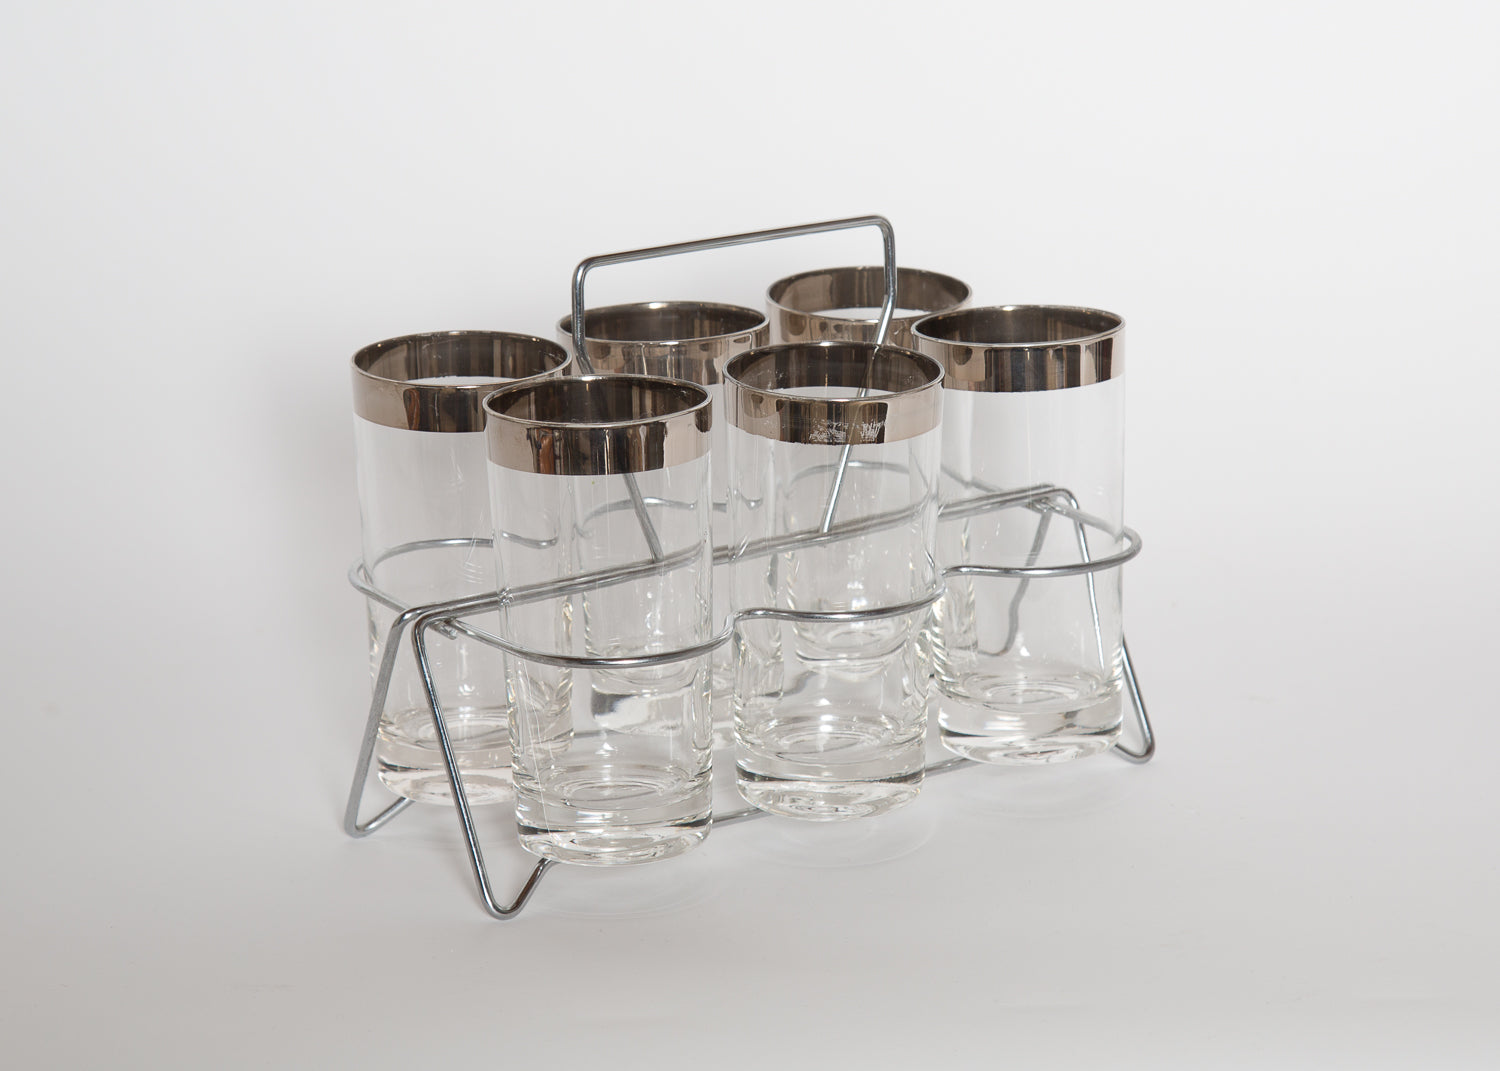 Vintage Silver Rimmed Highball Glasses Set of 6